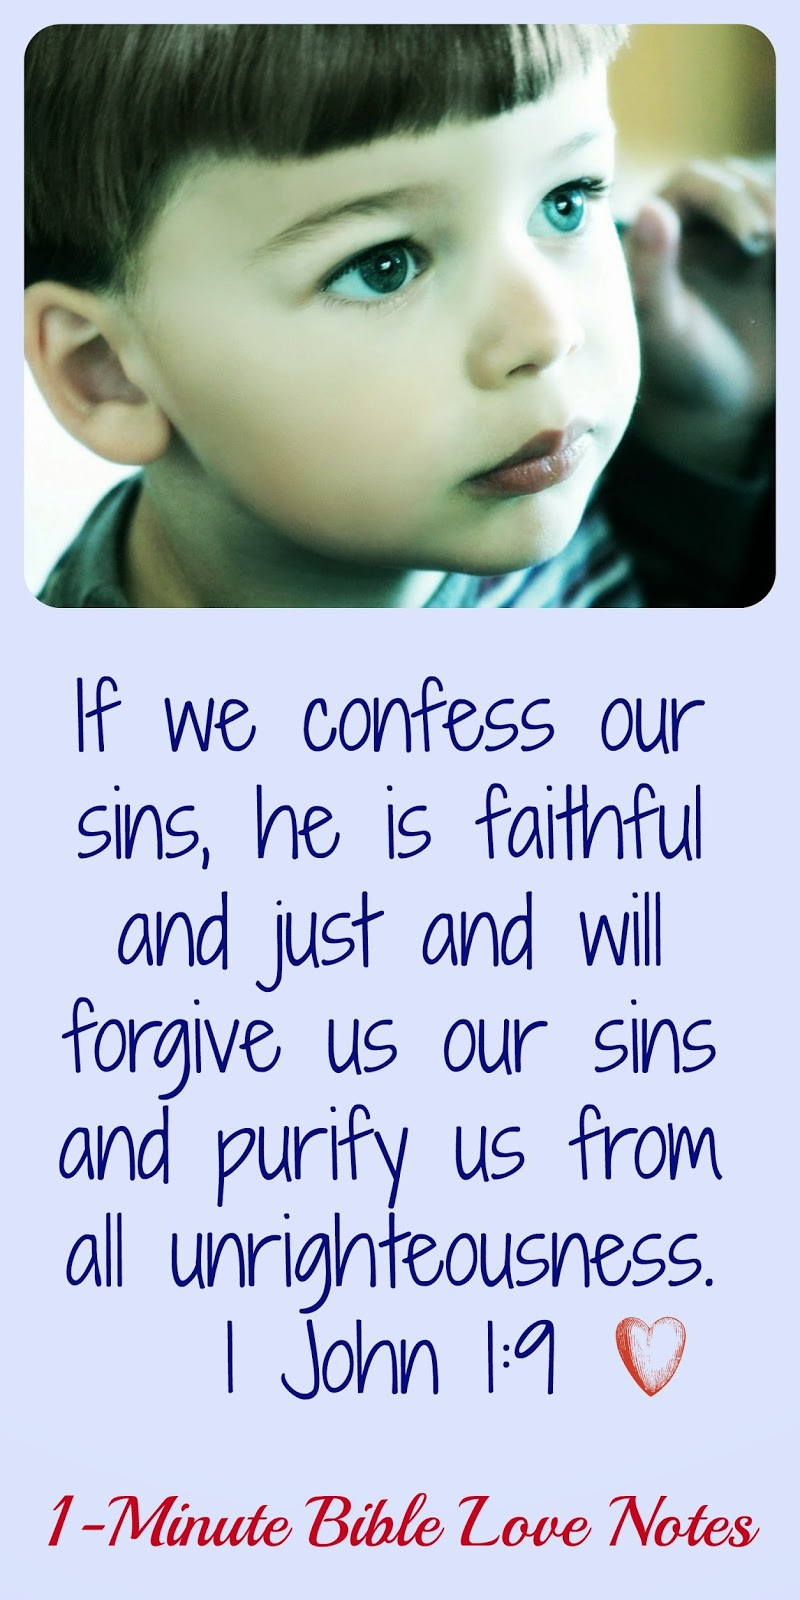 Confession of sin, Repentance, self-justification